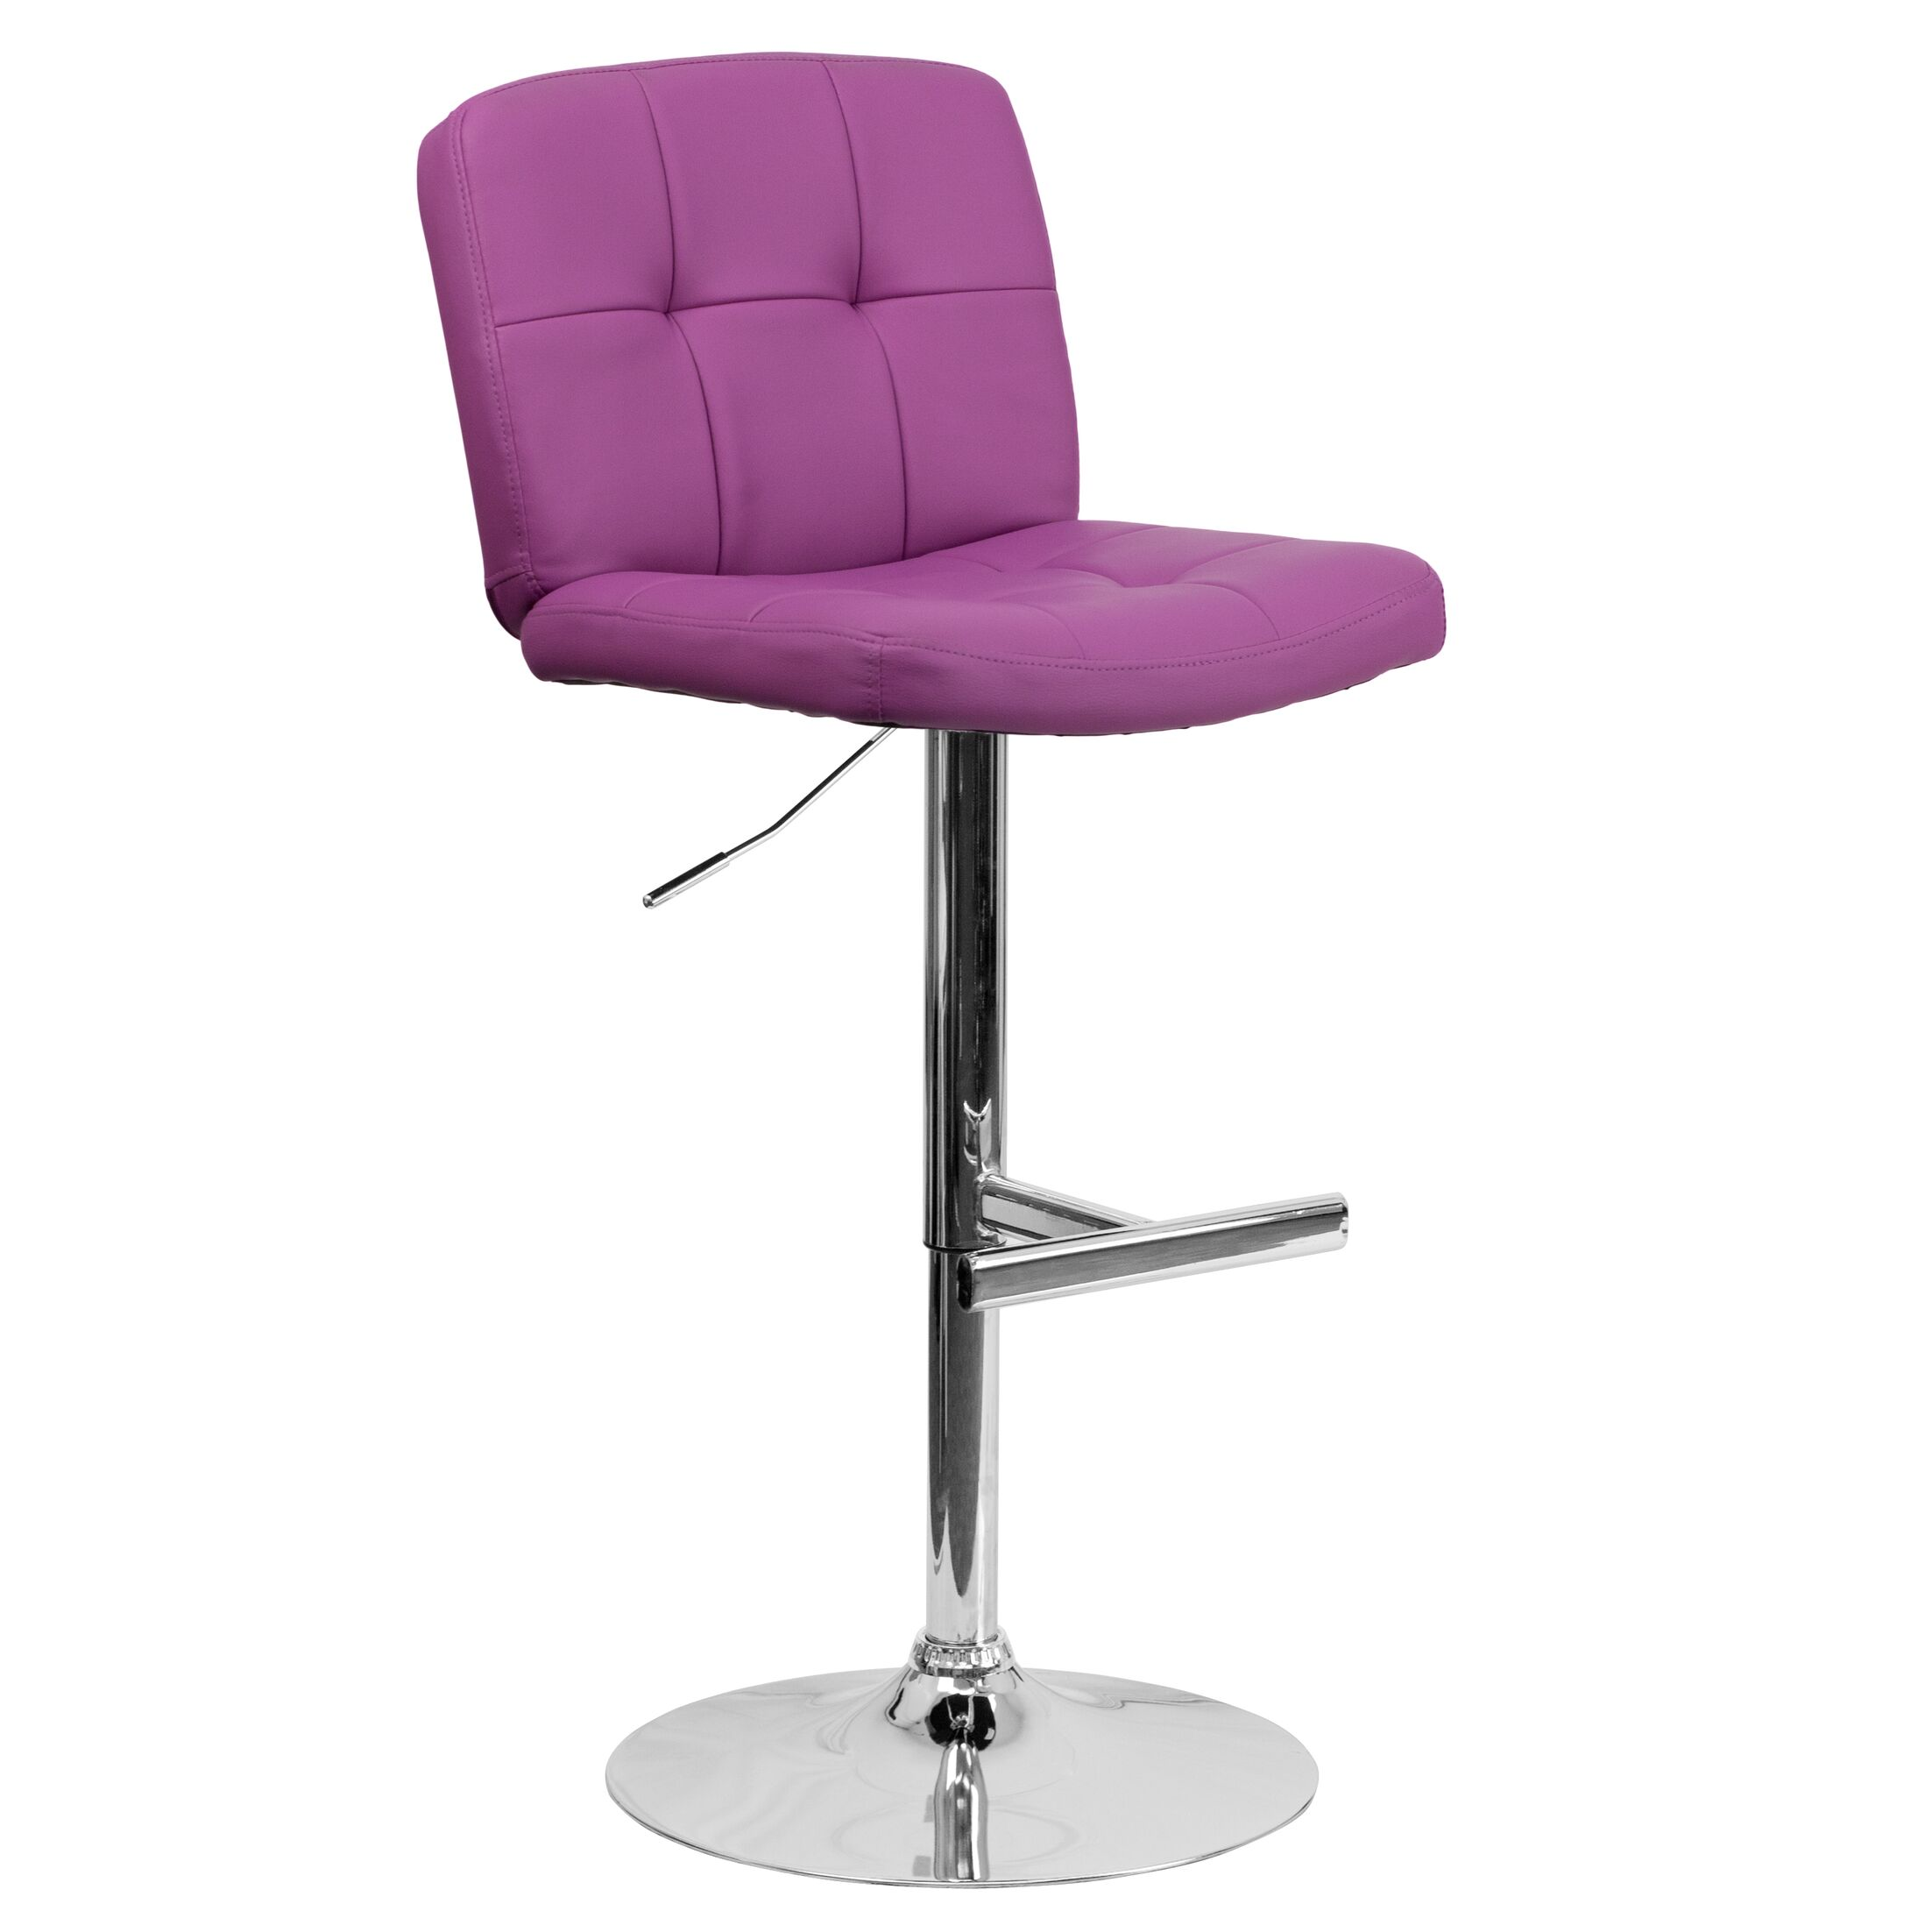 Alandra Adjustable Height Swivel Bar Stool (Set of 2) Upholstery: Purple